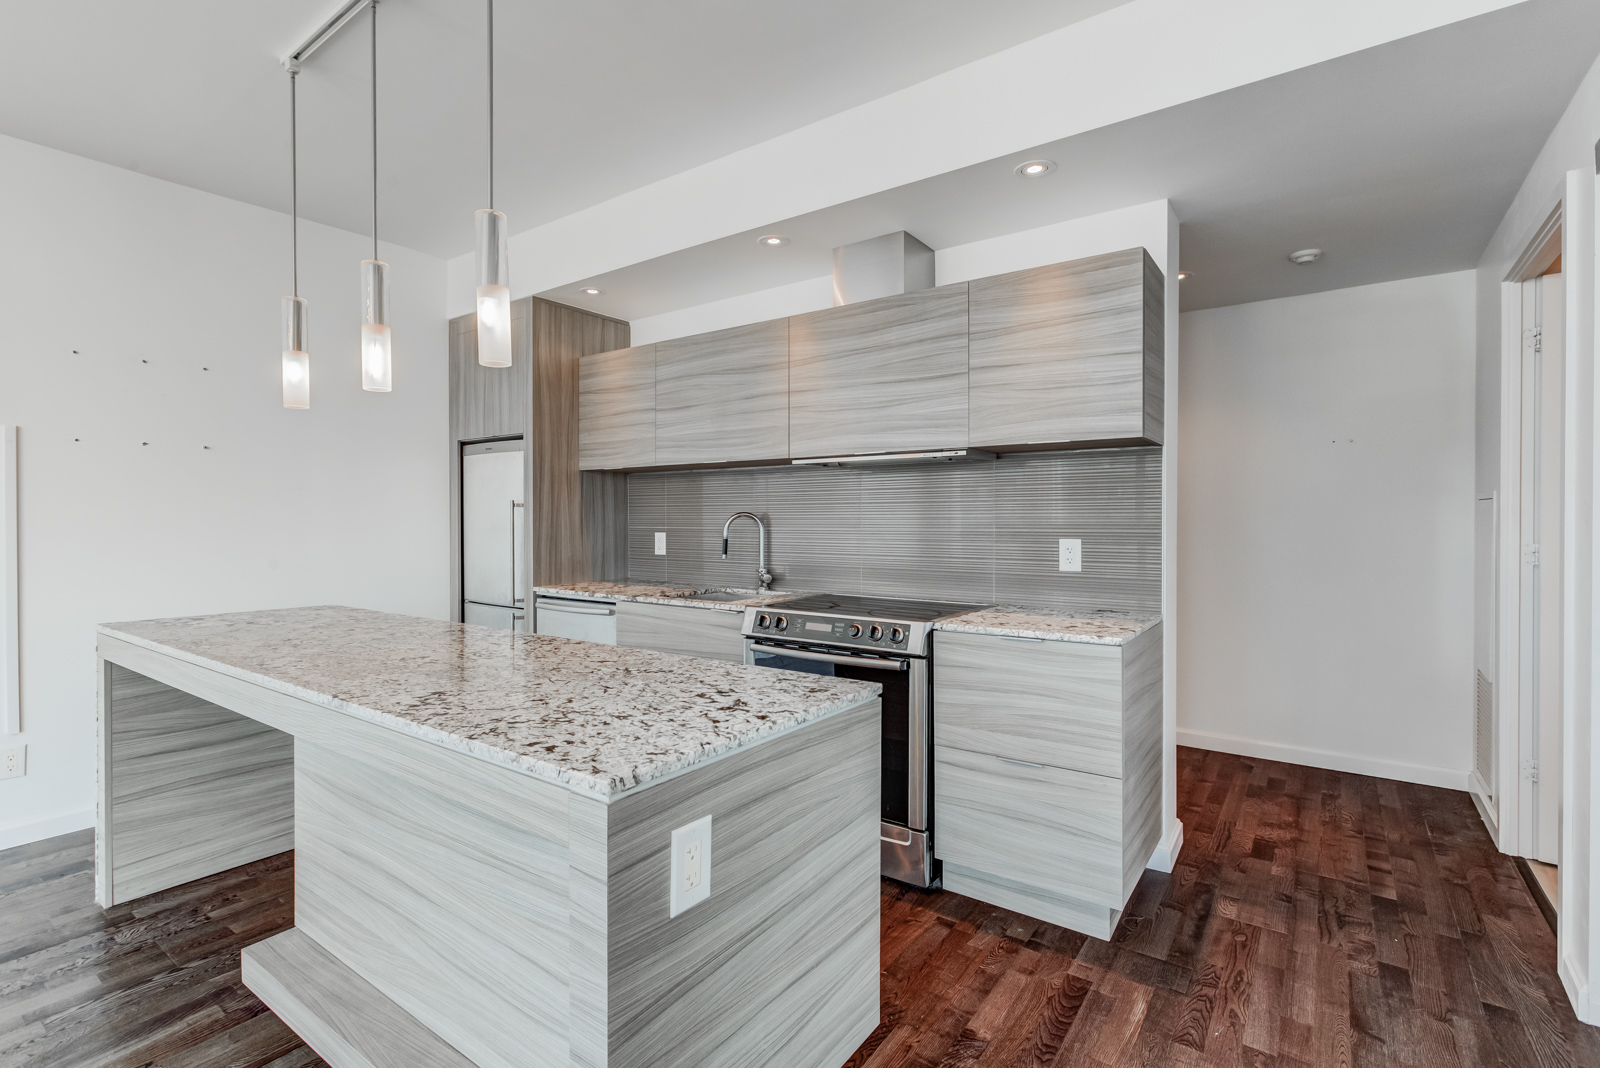 Kitchen island with speckled marble countertop and lighter base with wooden finish.